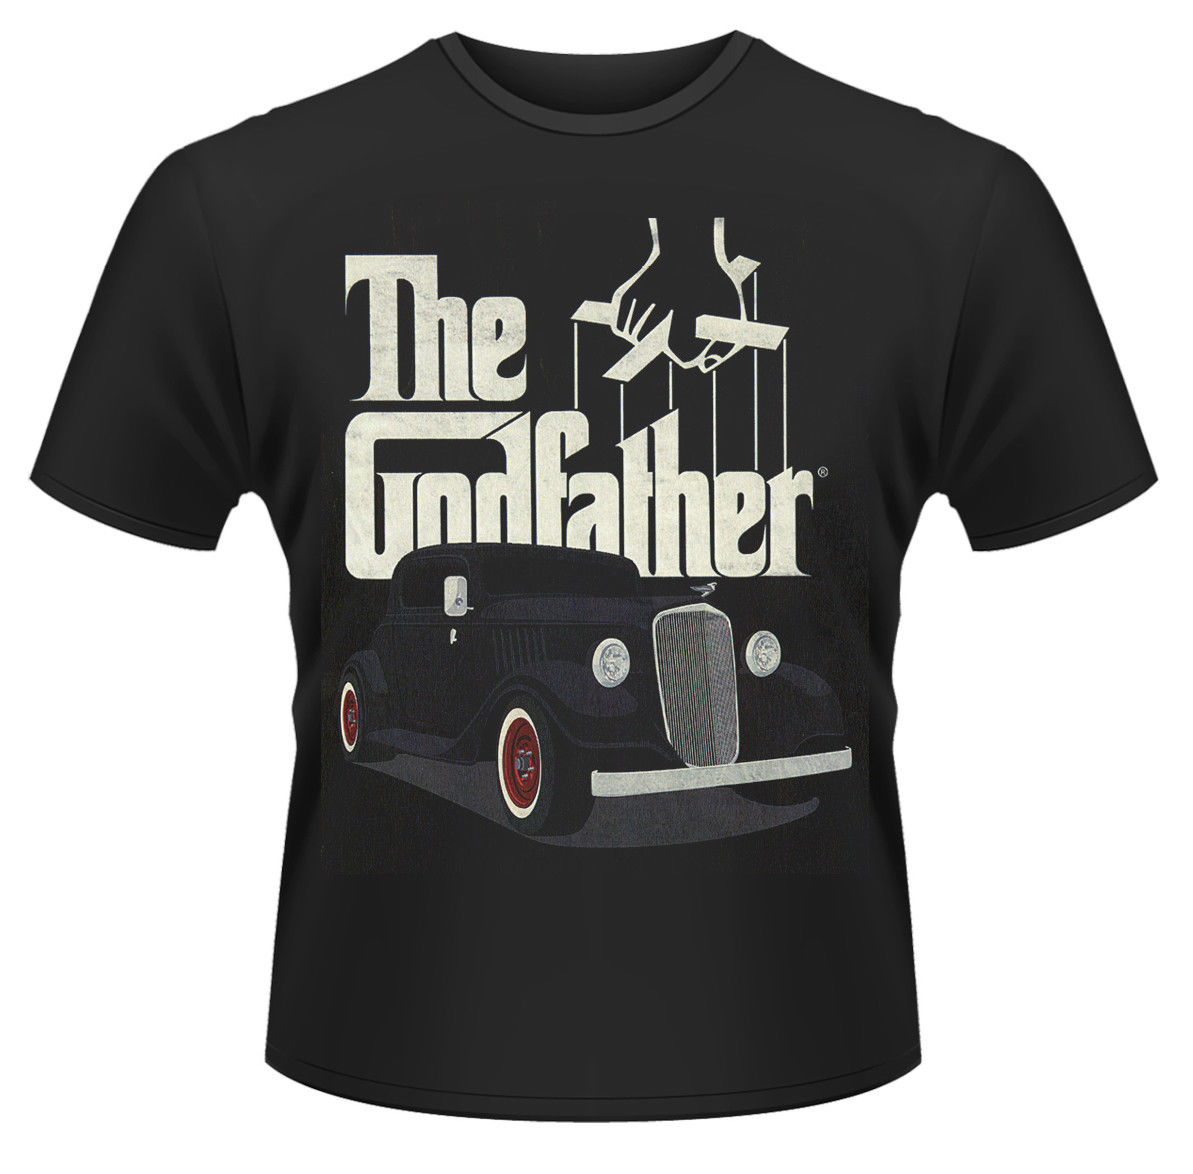 The Godfather Car T-SHIRT - Nuevo y Oficial Short Sleeves New Fashion T-Shirt Men Clothing Print Tee Shirts